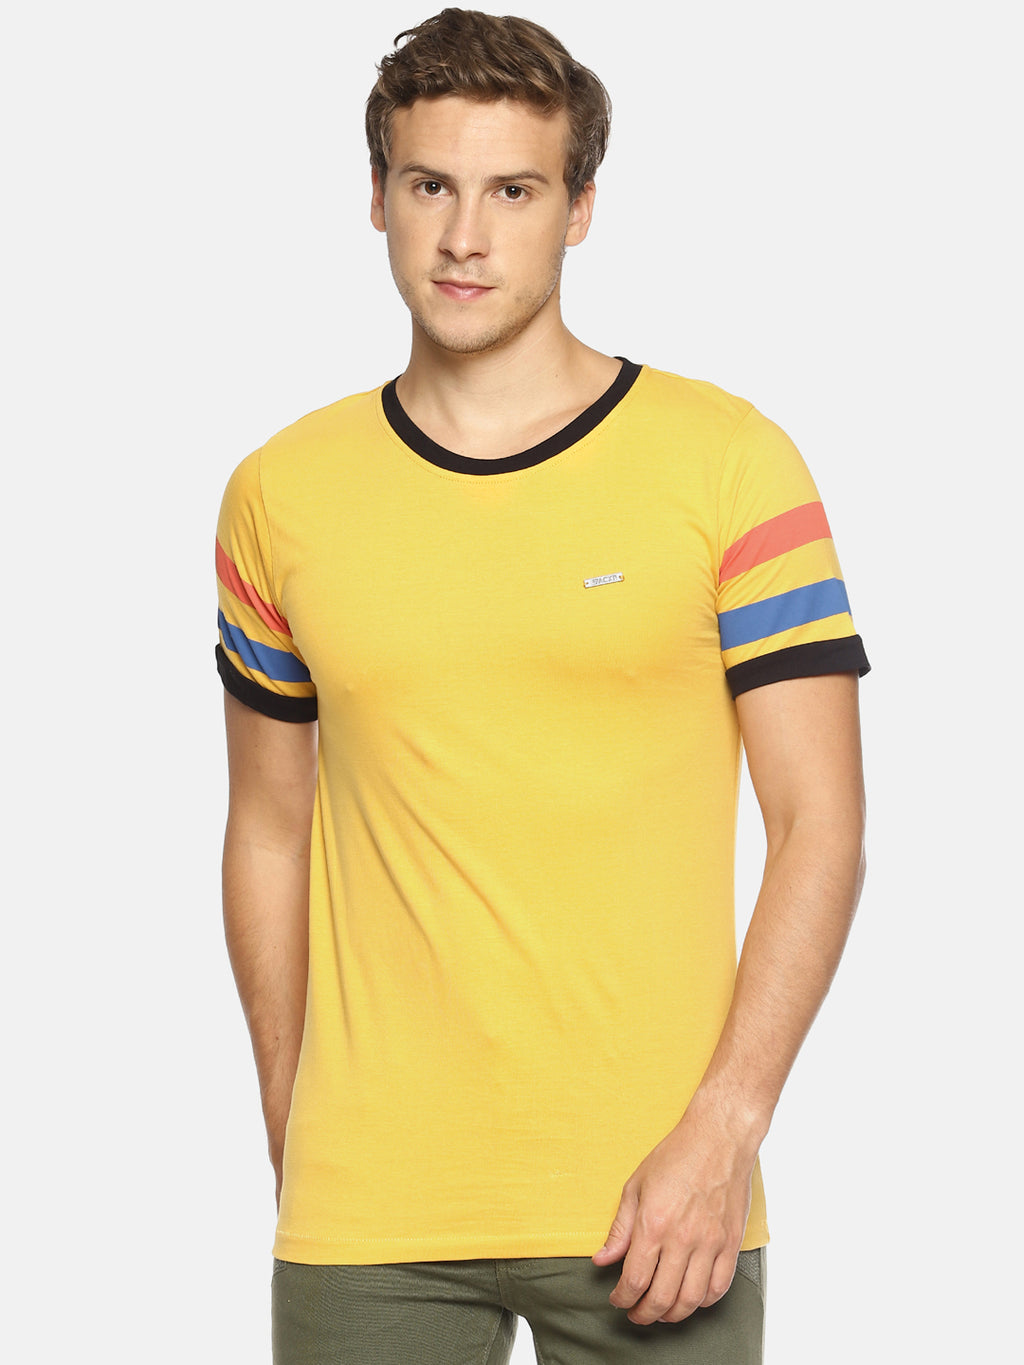 Yellow taped t-shirt